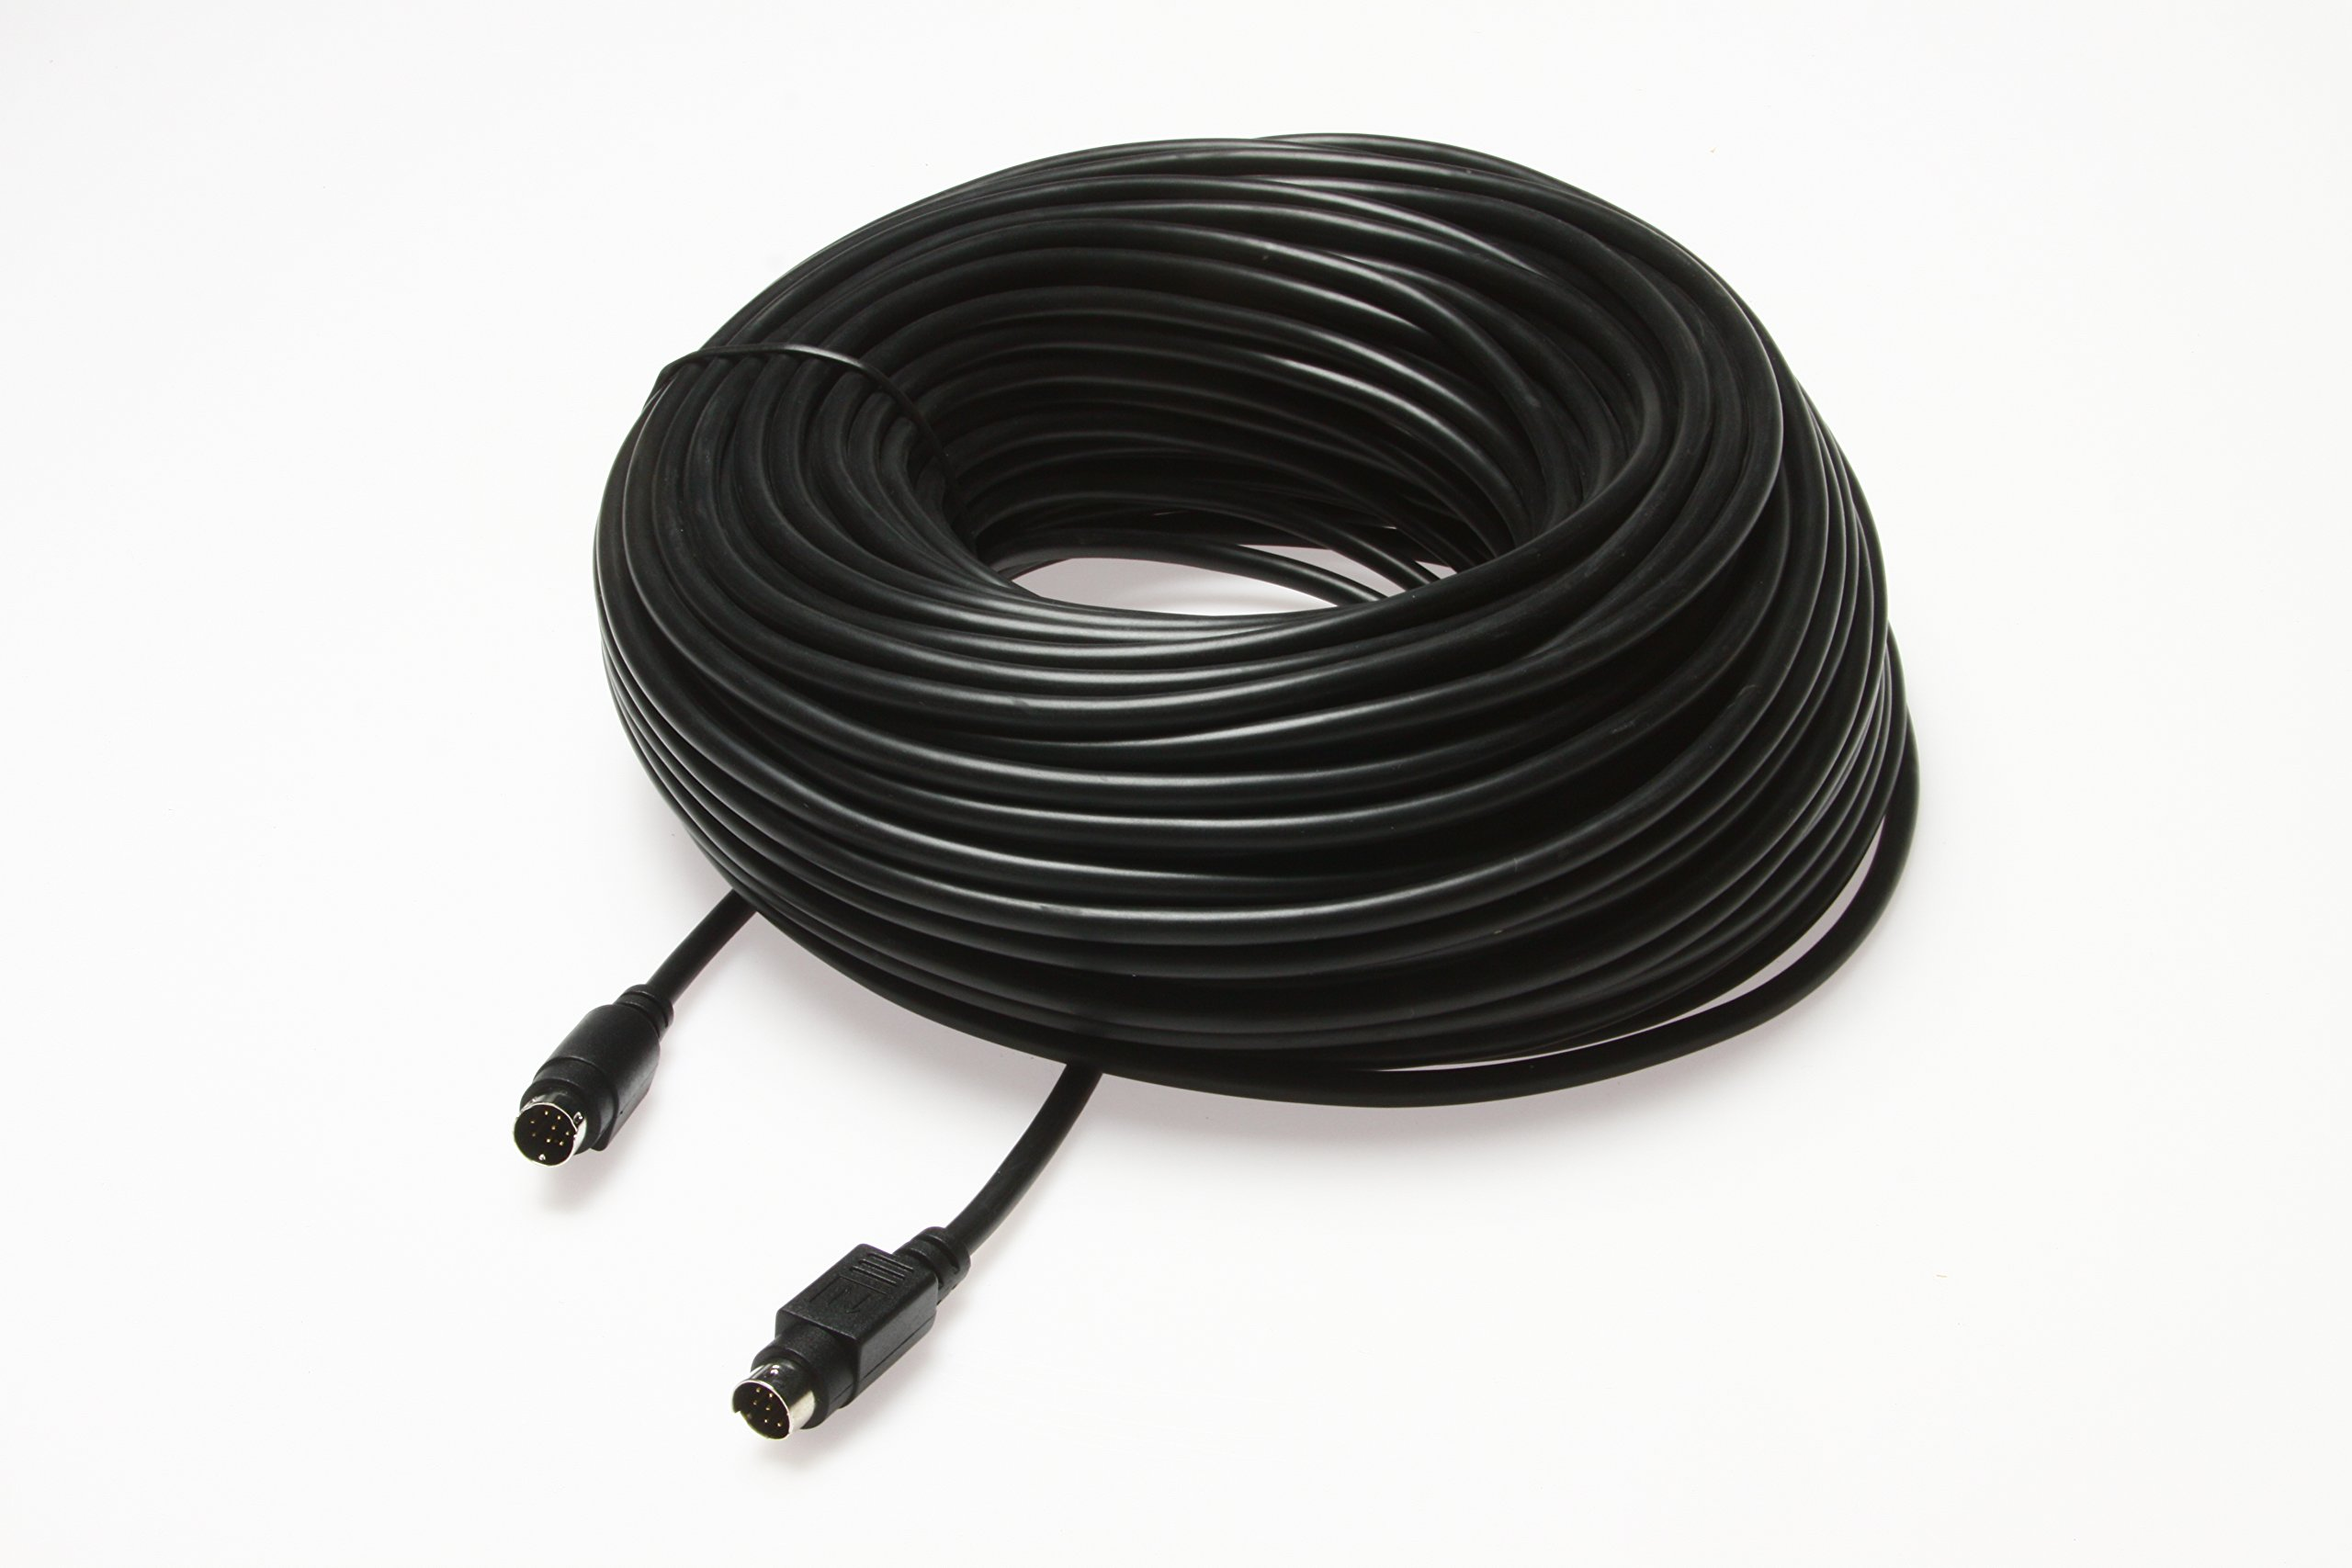 10/'Ft Sony VISCA Daisy Chain PTZ Camera Control Cable EVI//BRC//SRG series cameras